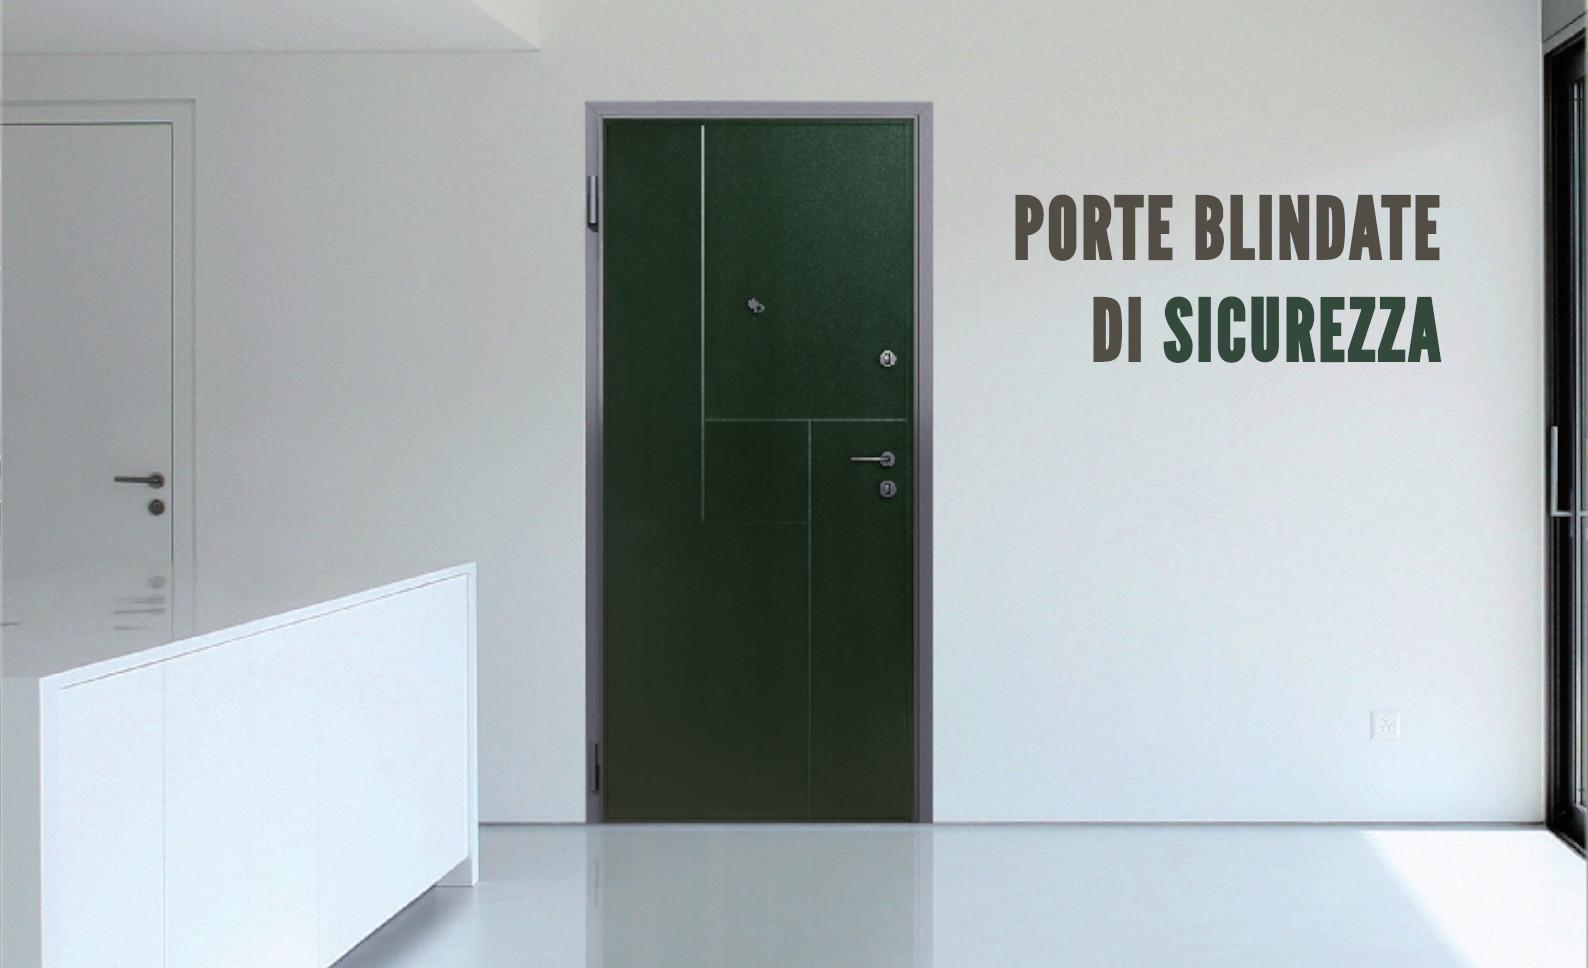 Porte blindate di sicurezza